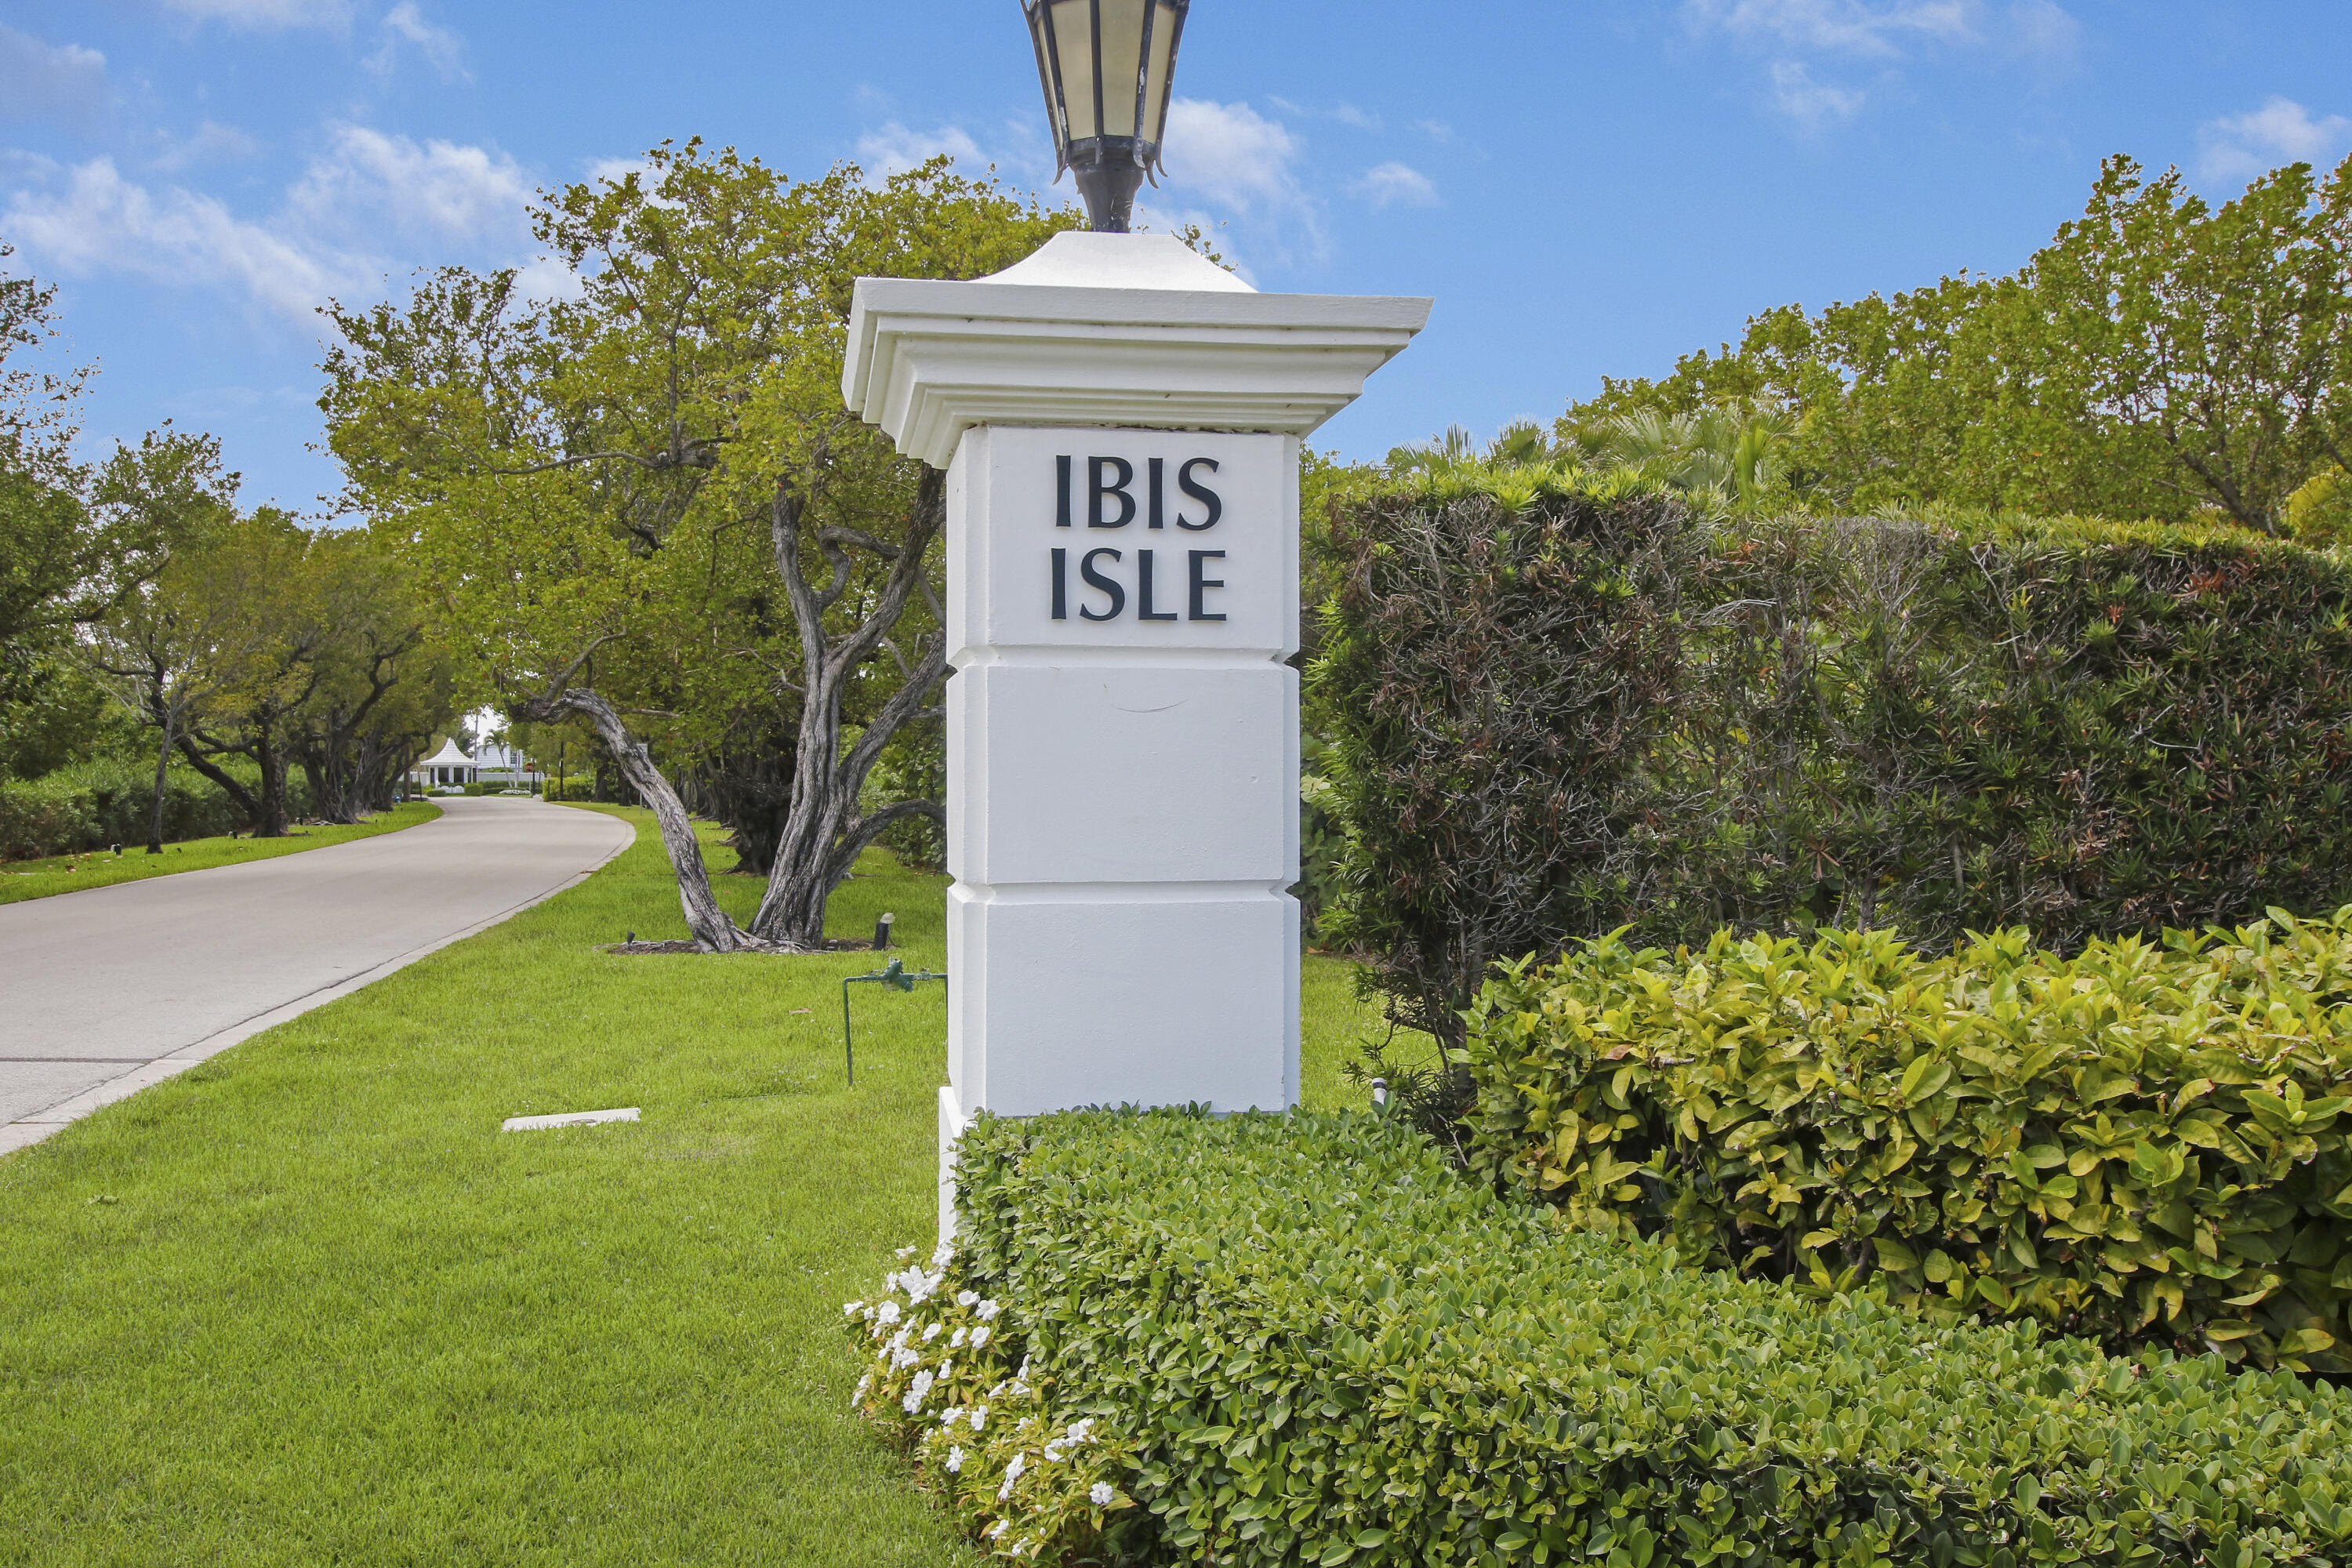 Welcome to this stunning 2 bedroom, 2 bath condominium located on desirable Ibis Isle in Palm Beach. This spectacular property is completely renovated and features include an open concept floor plan with 9 ft ceilings, quartz countertops with sleek modern cabinets, new flooring throughout and large impact glass sliders offering tremendous natural light. Enjoy time spent on the tranquil patio with views of the intracoastal waterway. Take a bike ride down scenic A1A, play golf across the street at the Palm Beach Par 3, and enjoy everything the Palm Beach lifestyle has to offer. Make this a must see on your tour today.